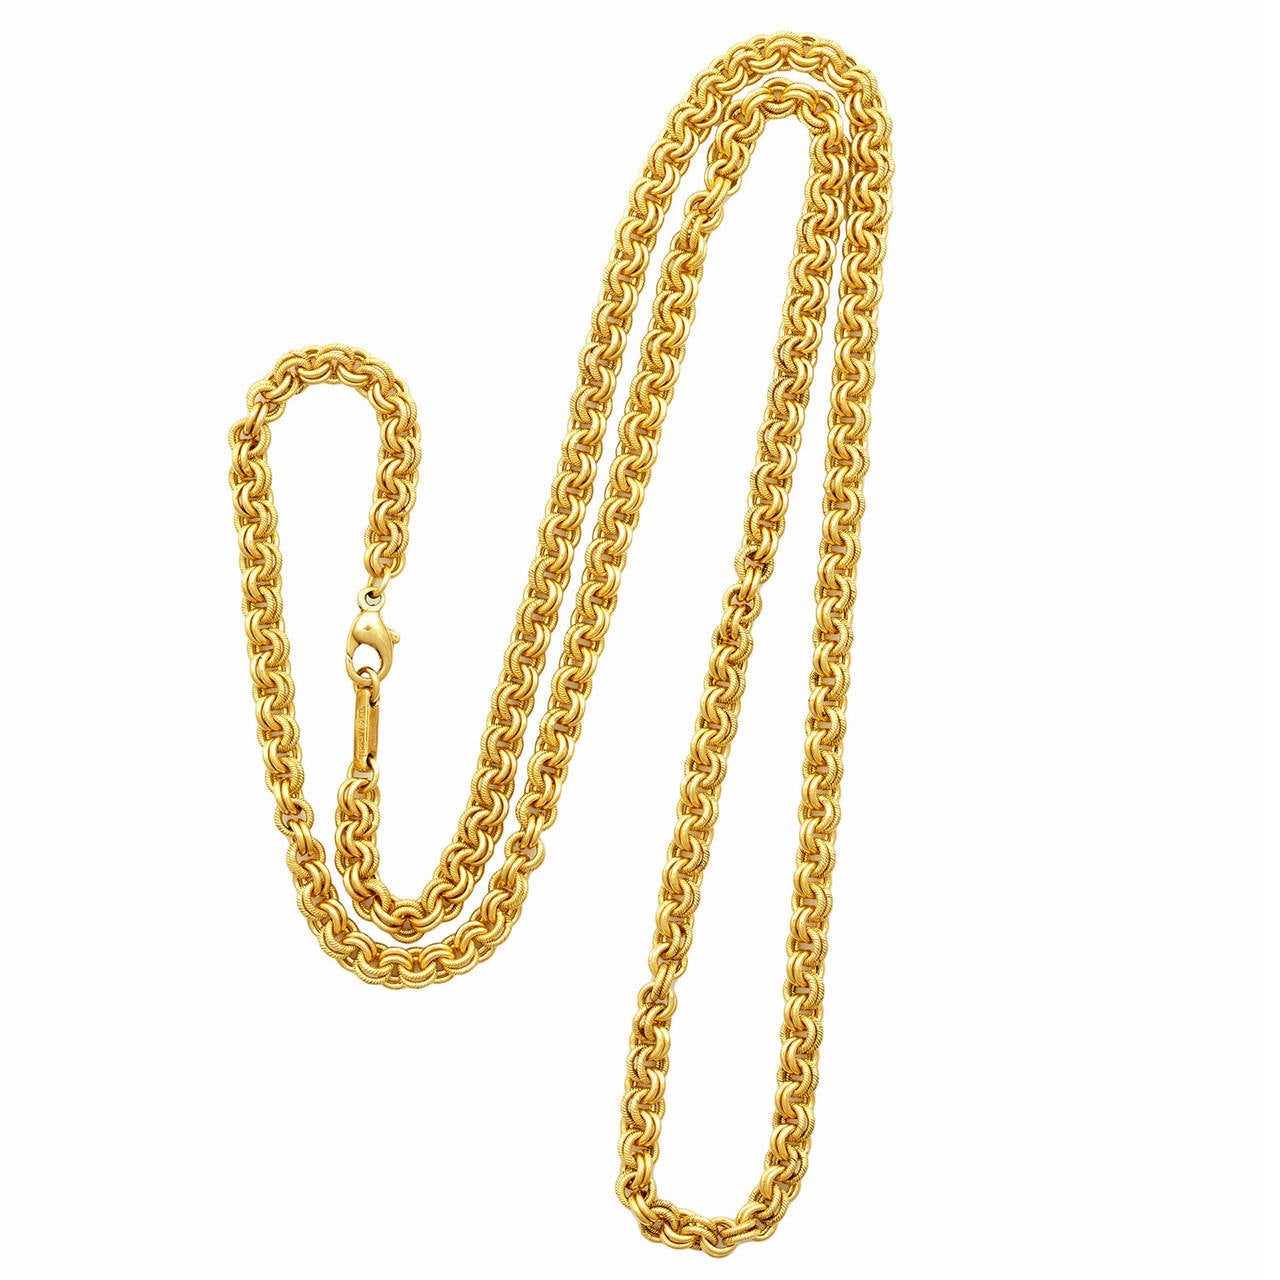 Tiffany & Co. 30 Inch Gold Rolo Link Necklace